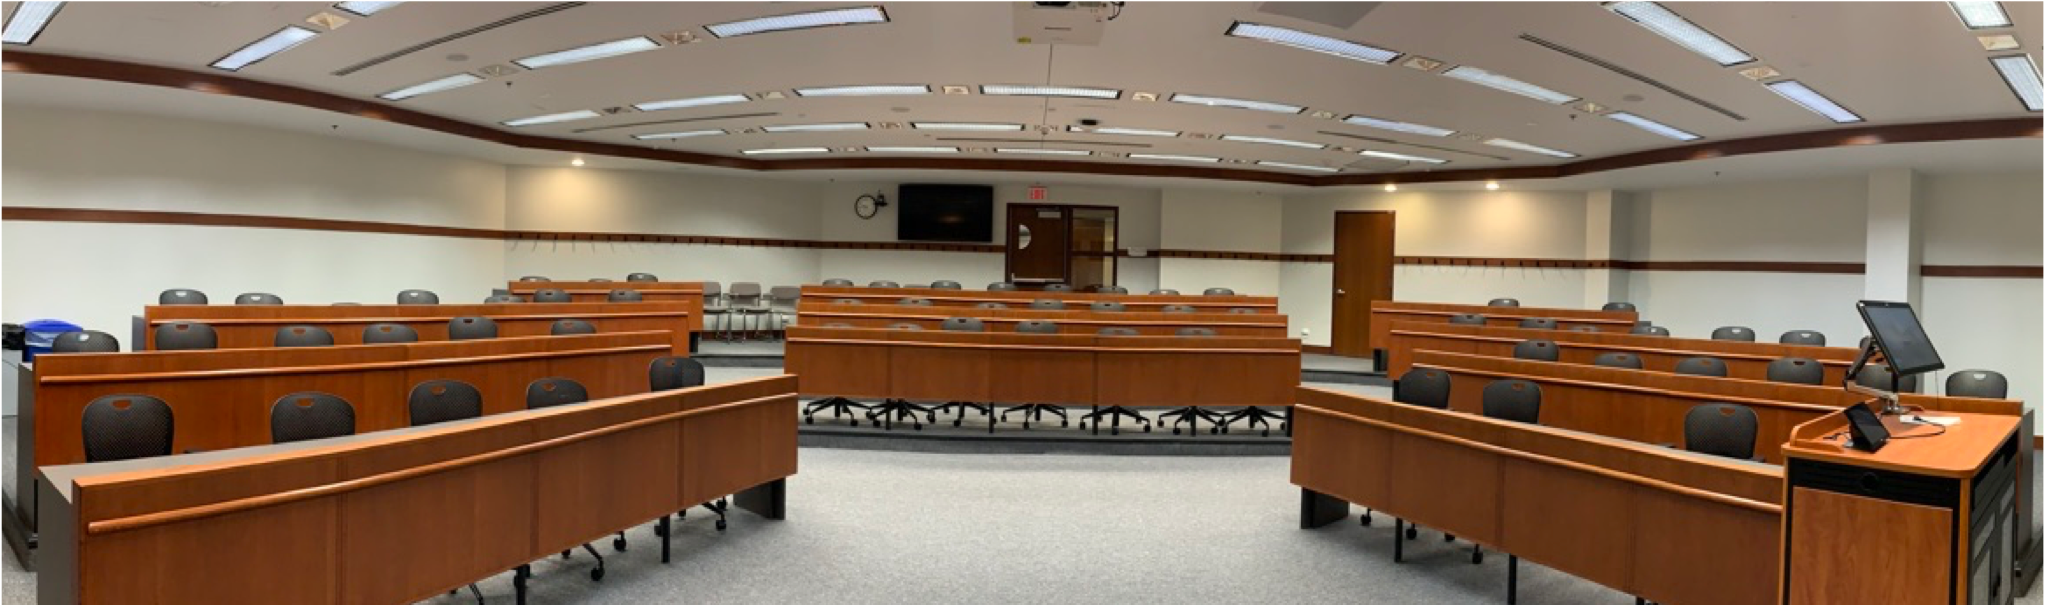 Modern lecture hall.